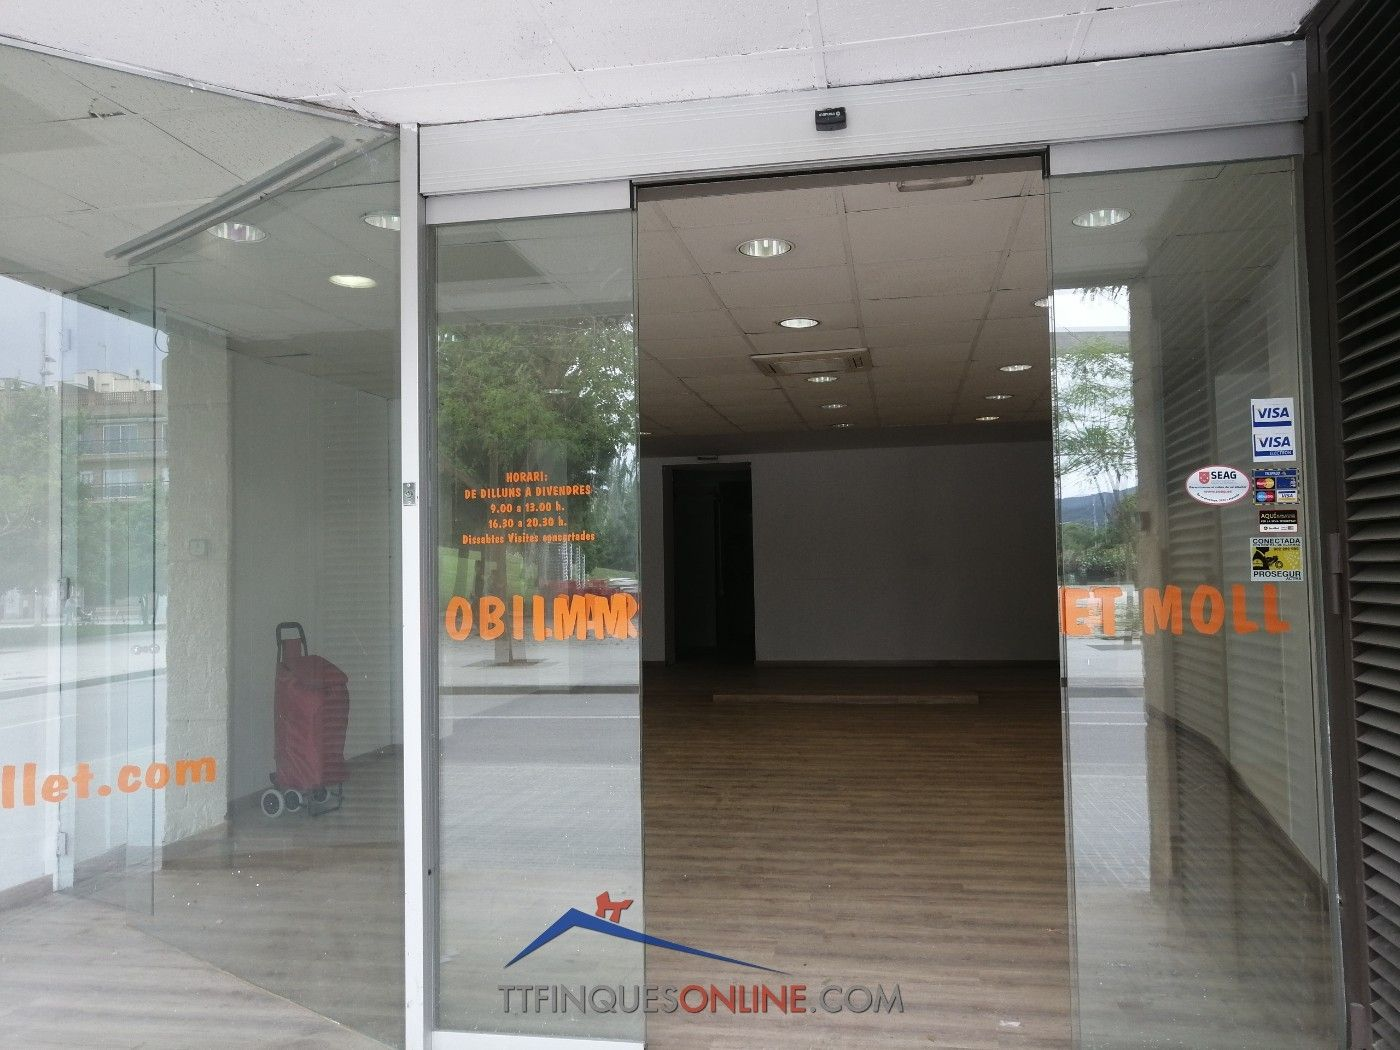 Affitto Locale commerciale in Alselm clave, 1. Zona les pruneres